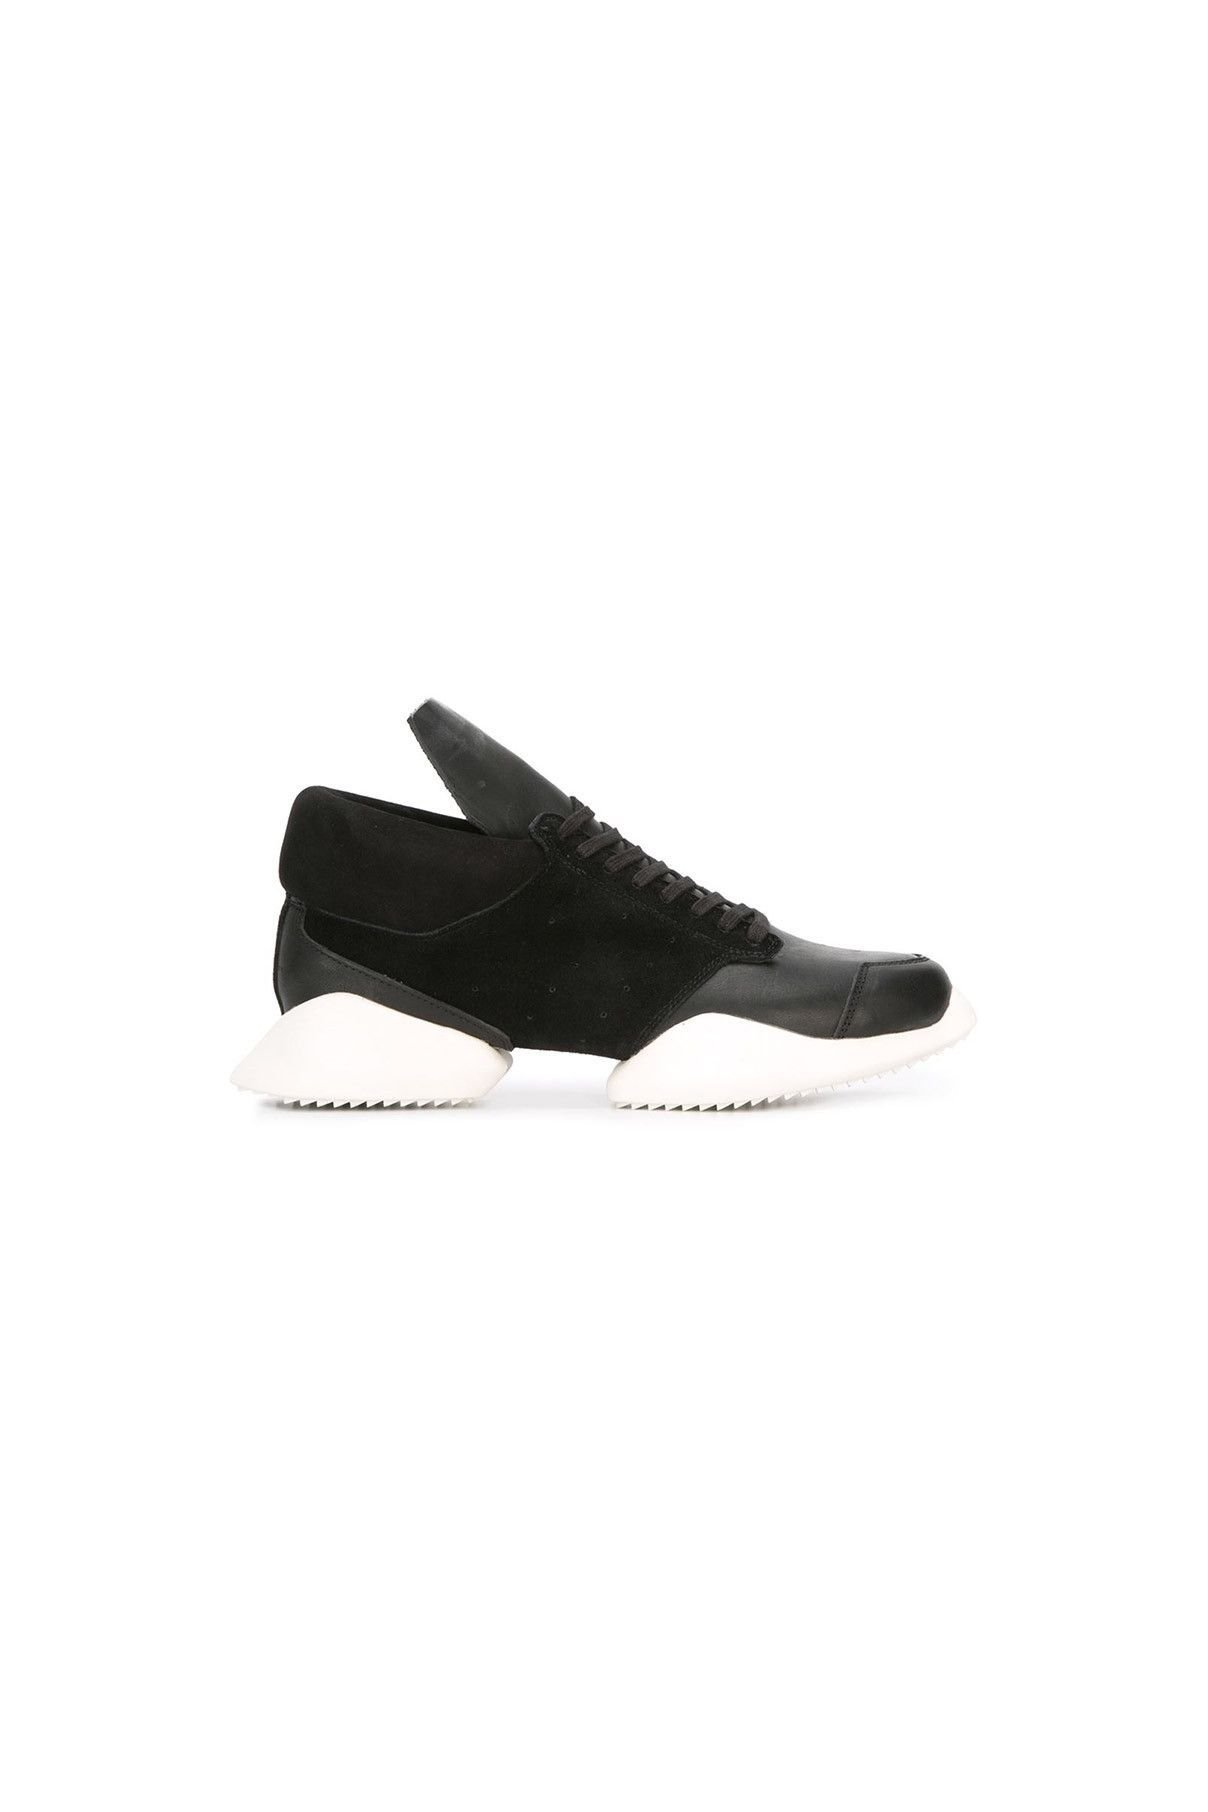 premium selection fe4a3 29dc2  Adidas by Rick Owens   02 shoe   06 sneaker  Vicious Runner